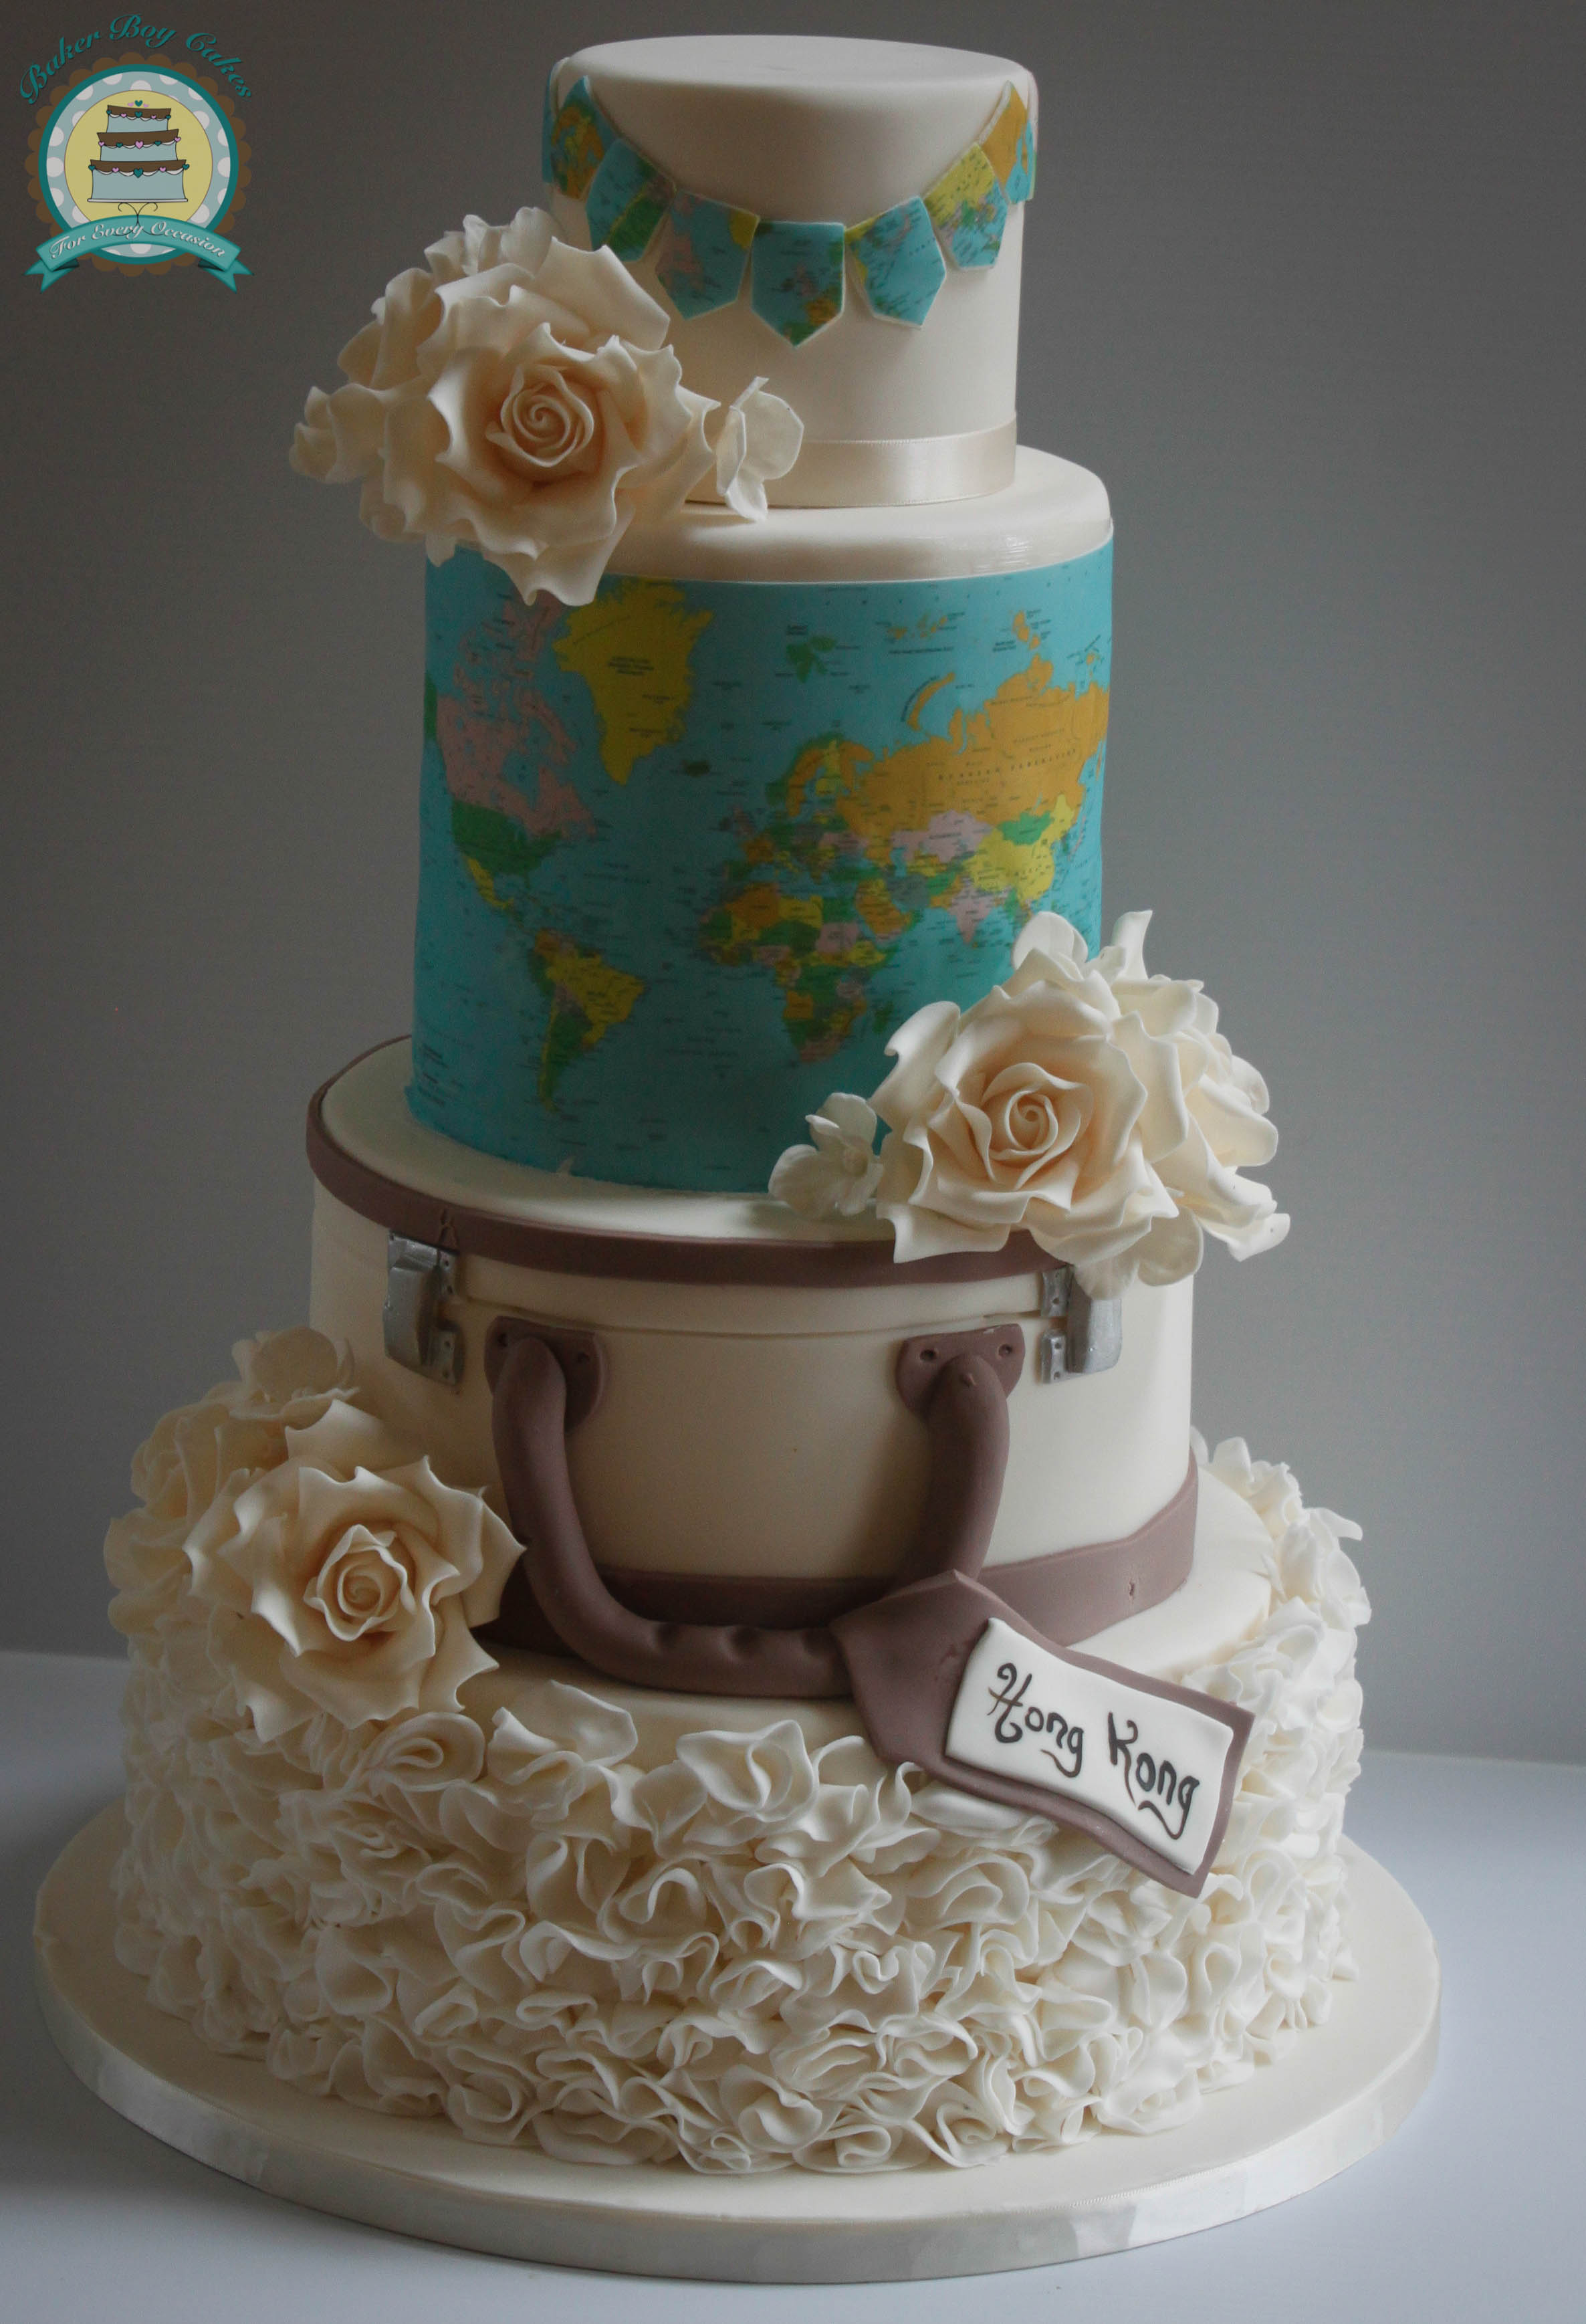 17 Lovely Wedding Cakes images 10